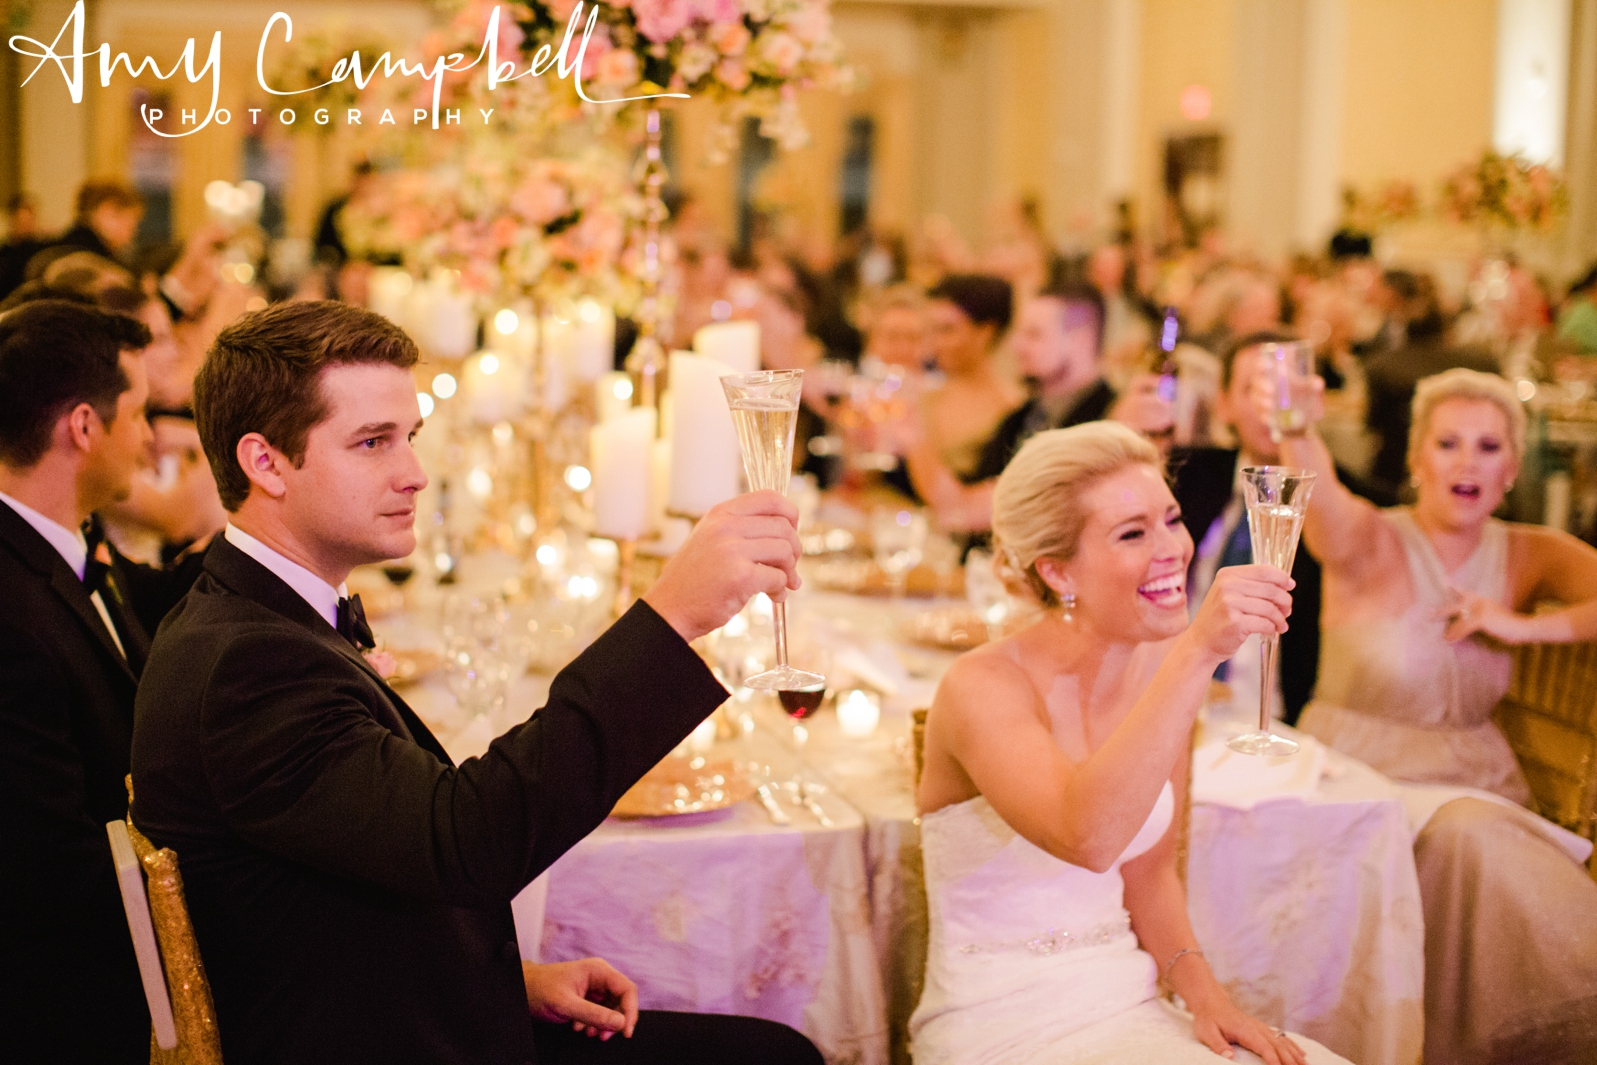 chelseamike_wedss_pics_amycampbellphotography_127.jpg